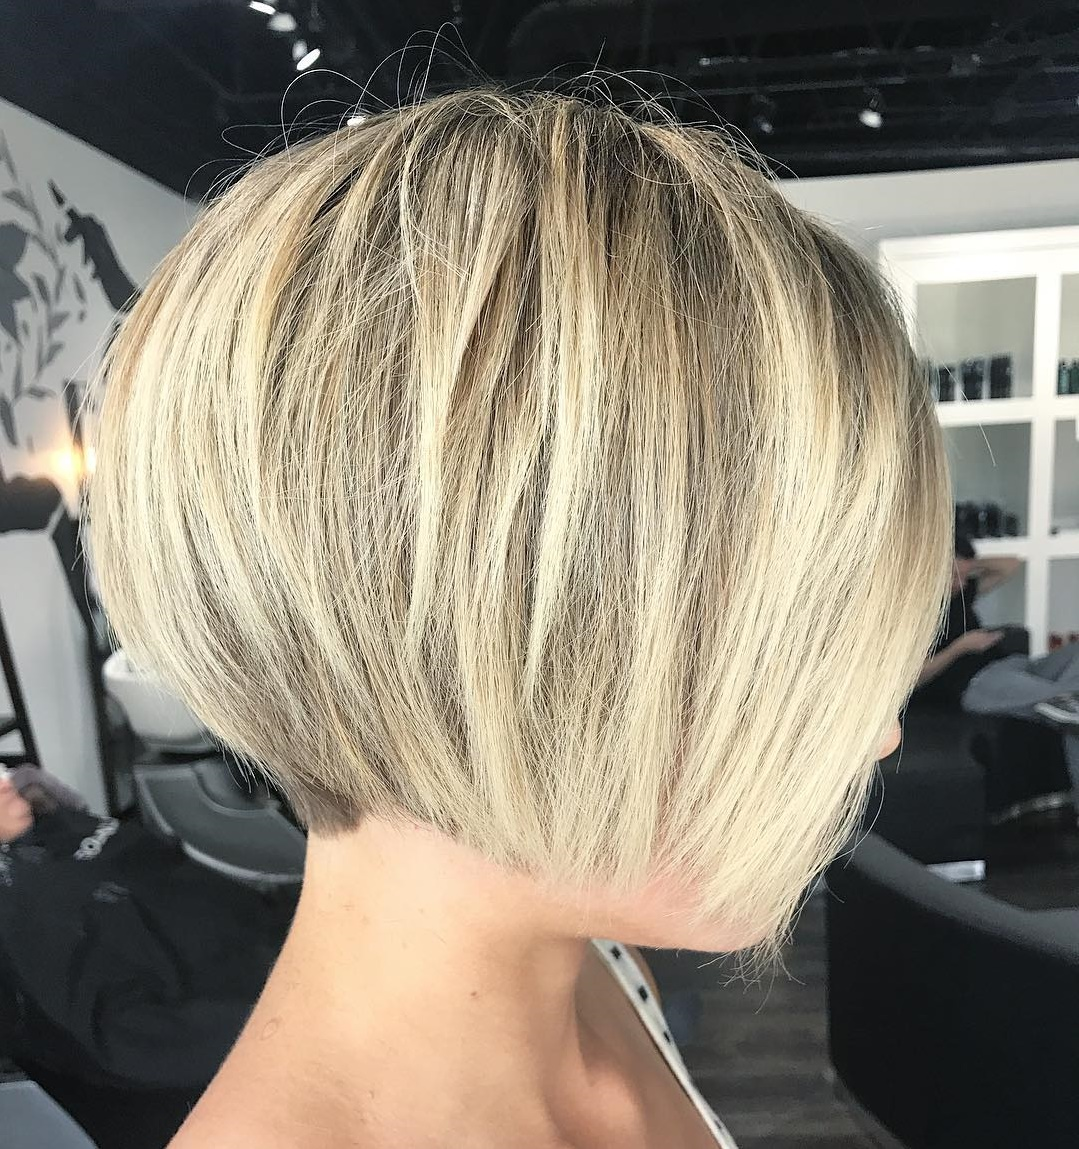 11 Brand New Short Bob Haircuts and Hairstyles for 11 - Hair Adviser